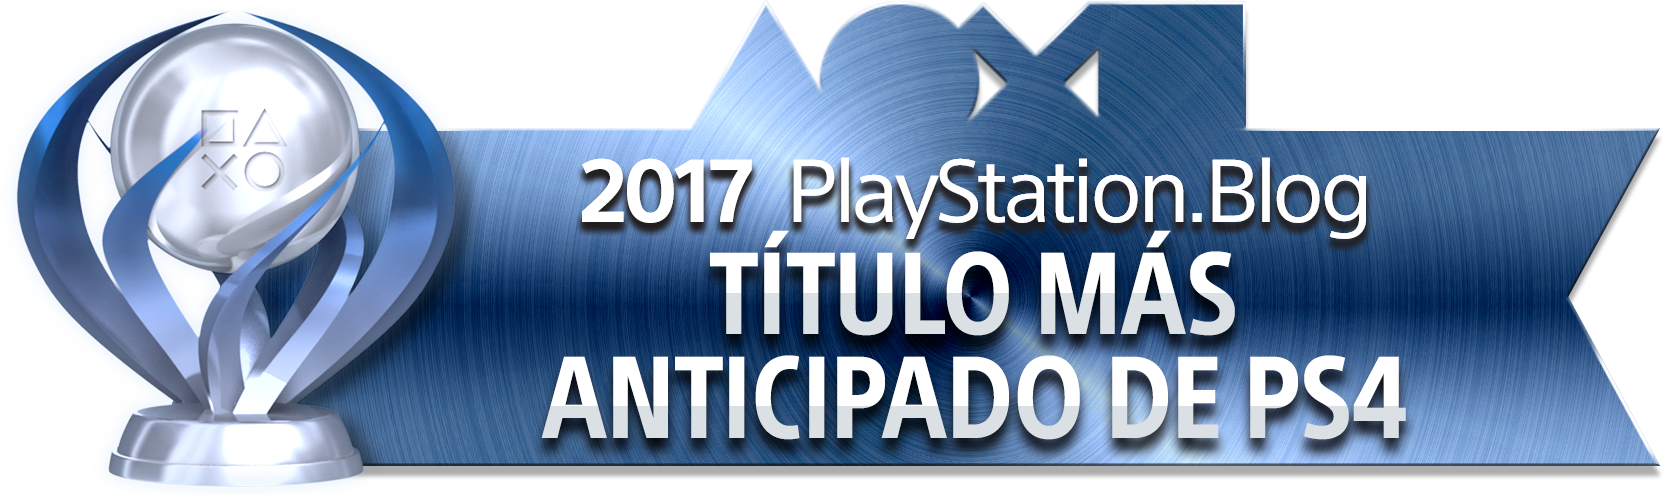 PlayStation Blog Game of the Year 2017 - Most Anticipated PS4 Title (Platinum)